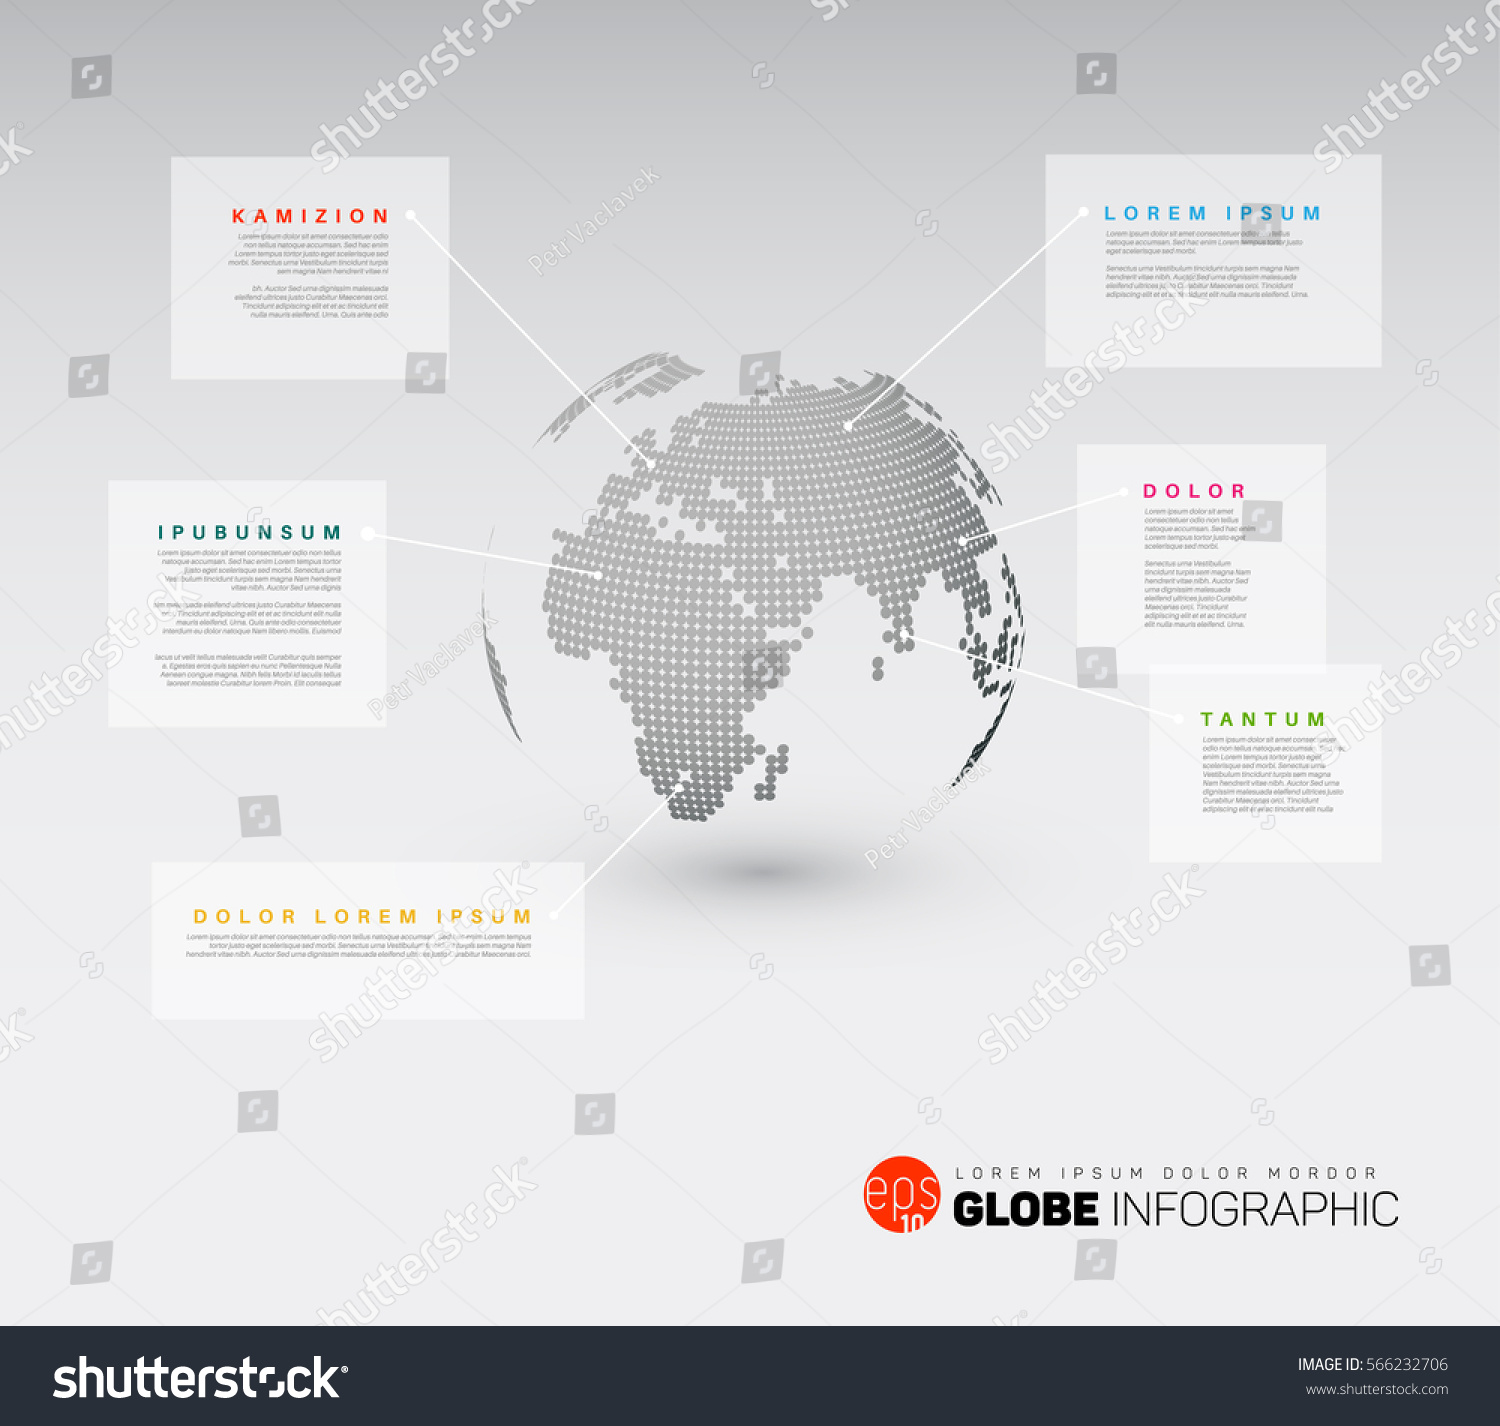 World map globe pointer marks light vectores en stock 566232706 world map globe with pointer marks light version with colorful labels gumiabroncs Image collections